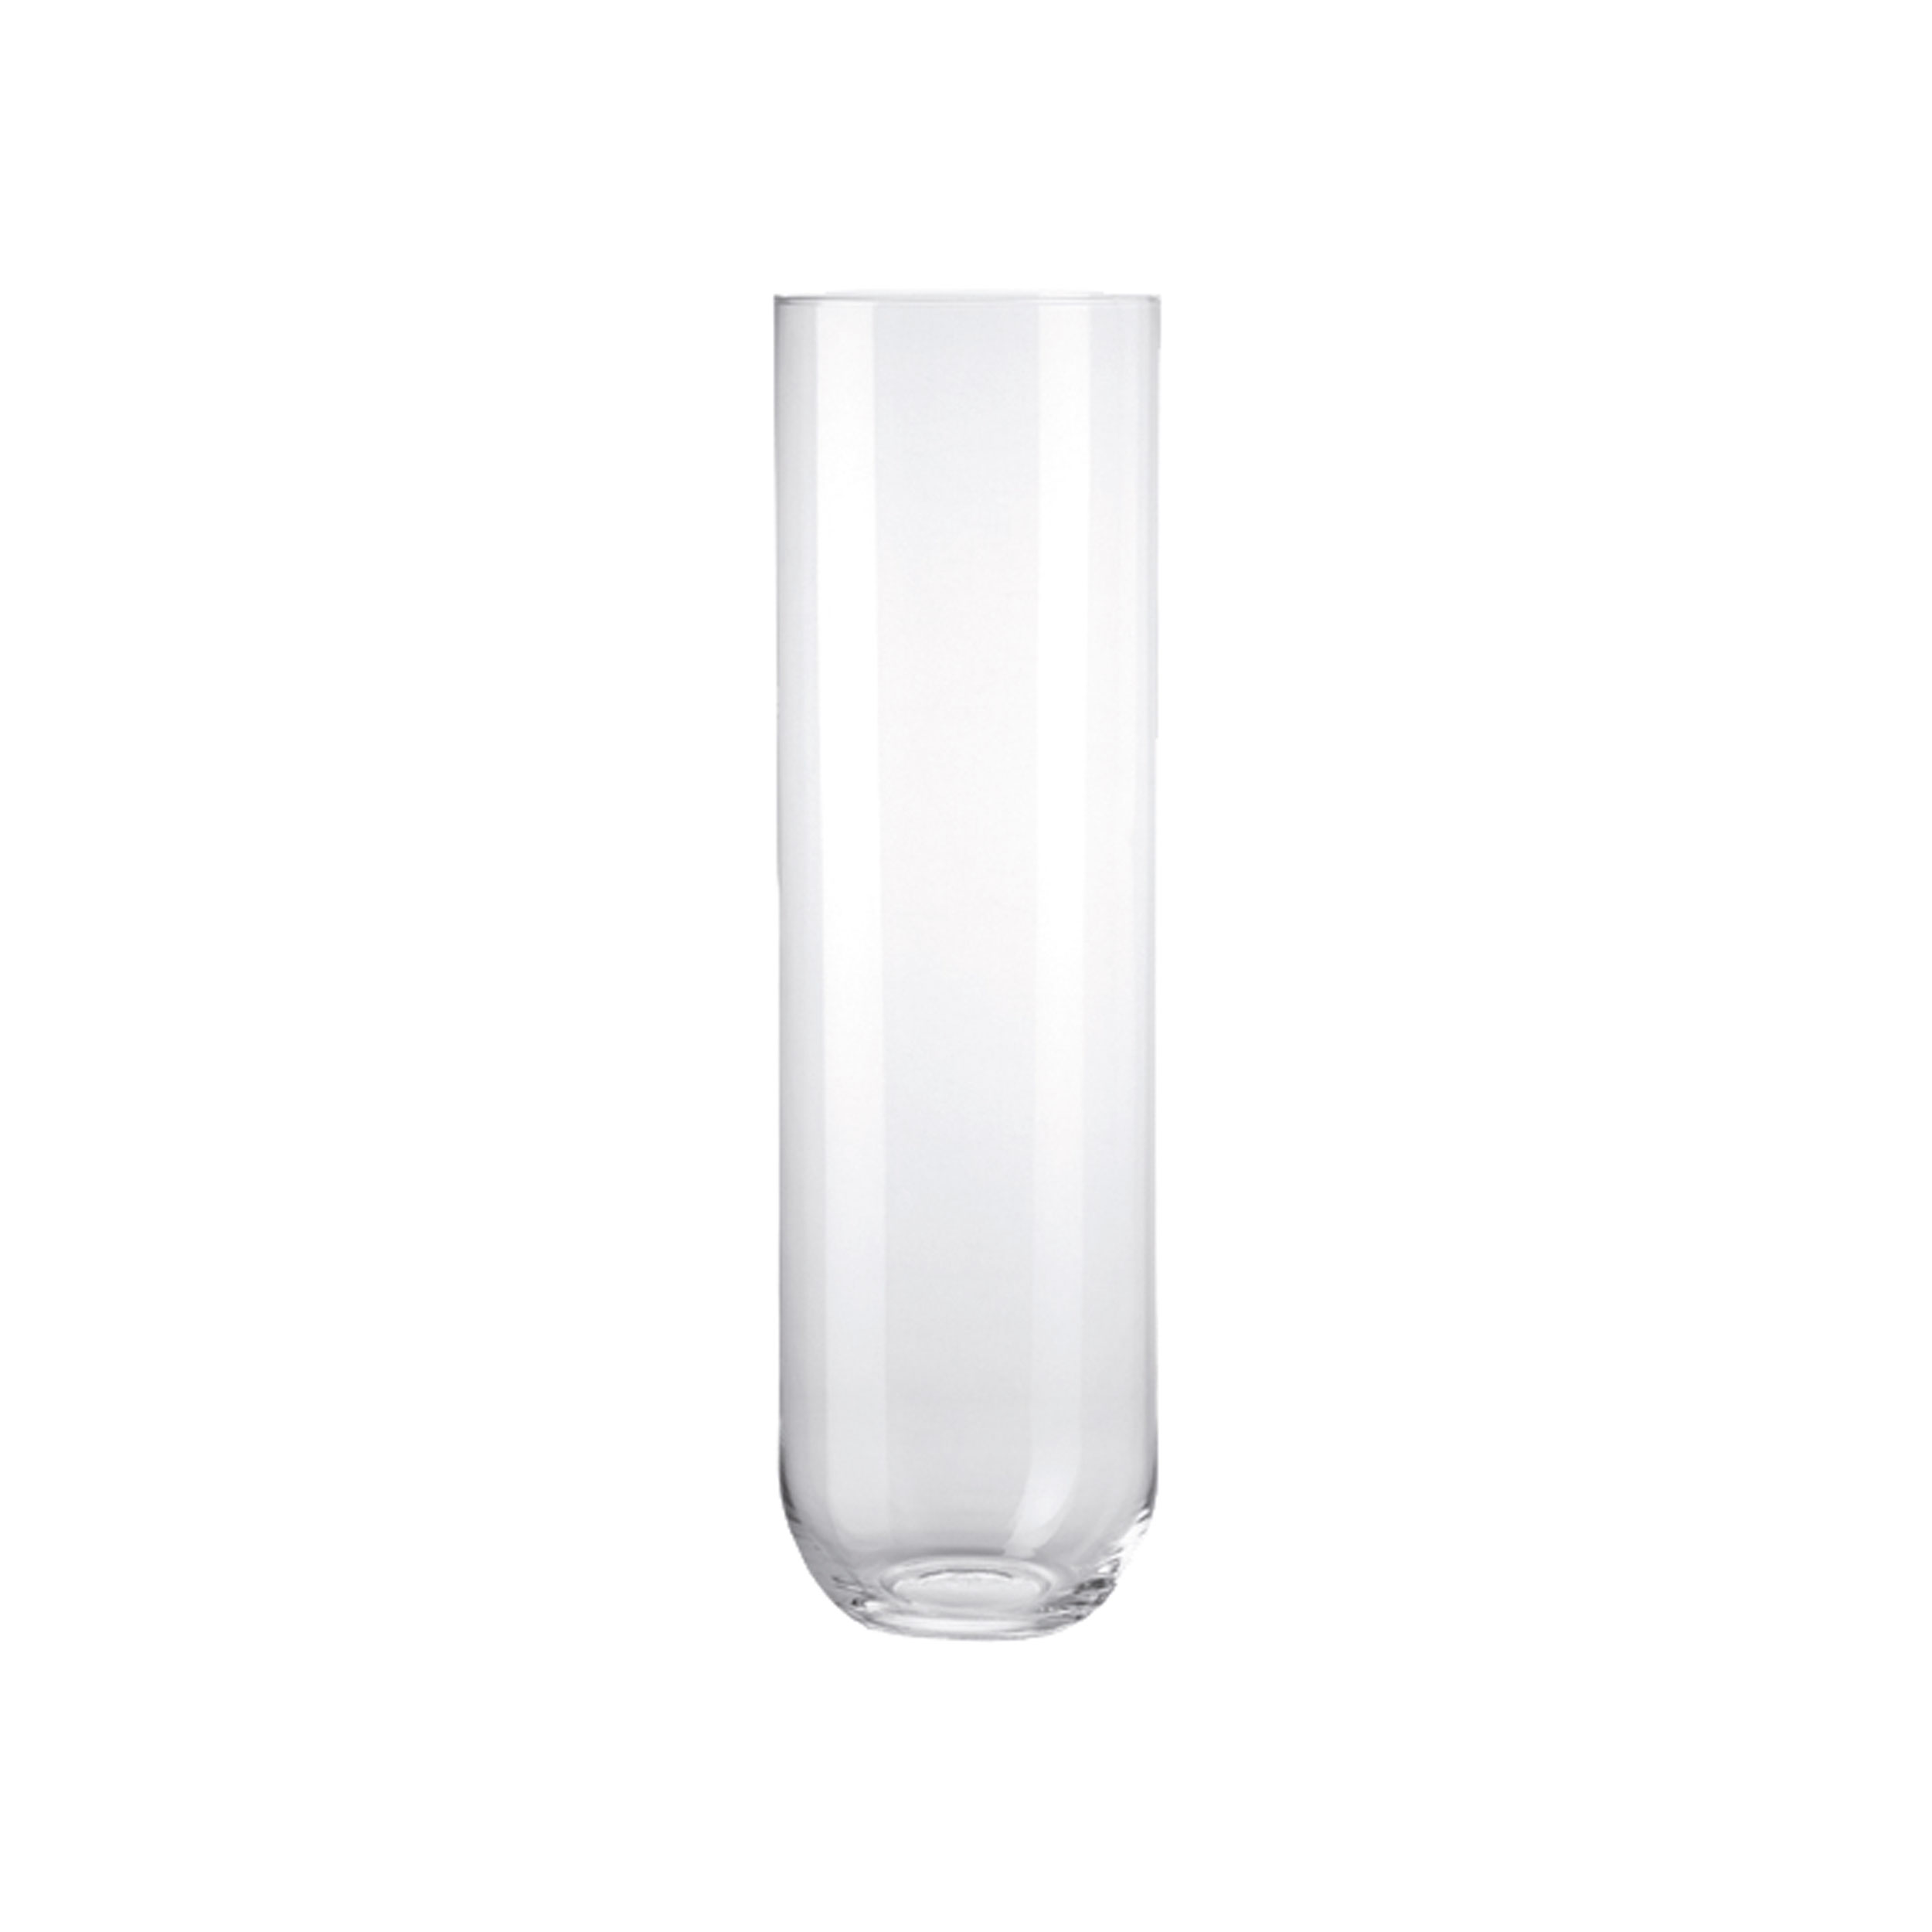 Leonardo Vase Leonardo Milano Vase Flower Vase Handmade Clear Glass Thick Base Glass H 50 Cm 29604 At About Tea De Shop